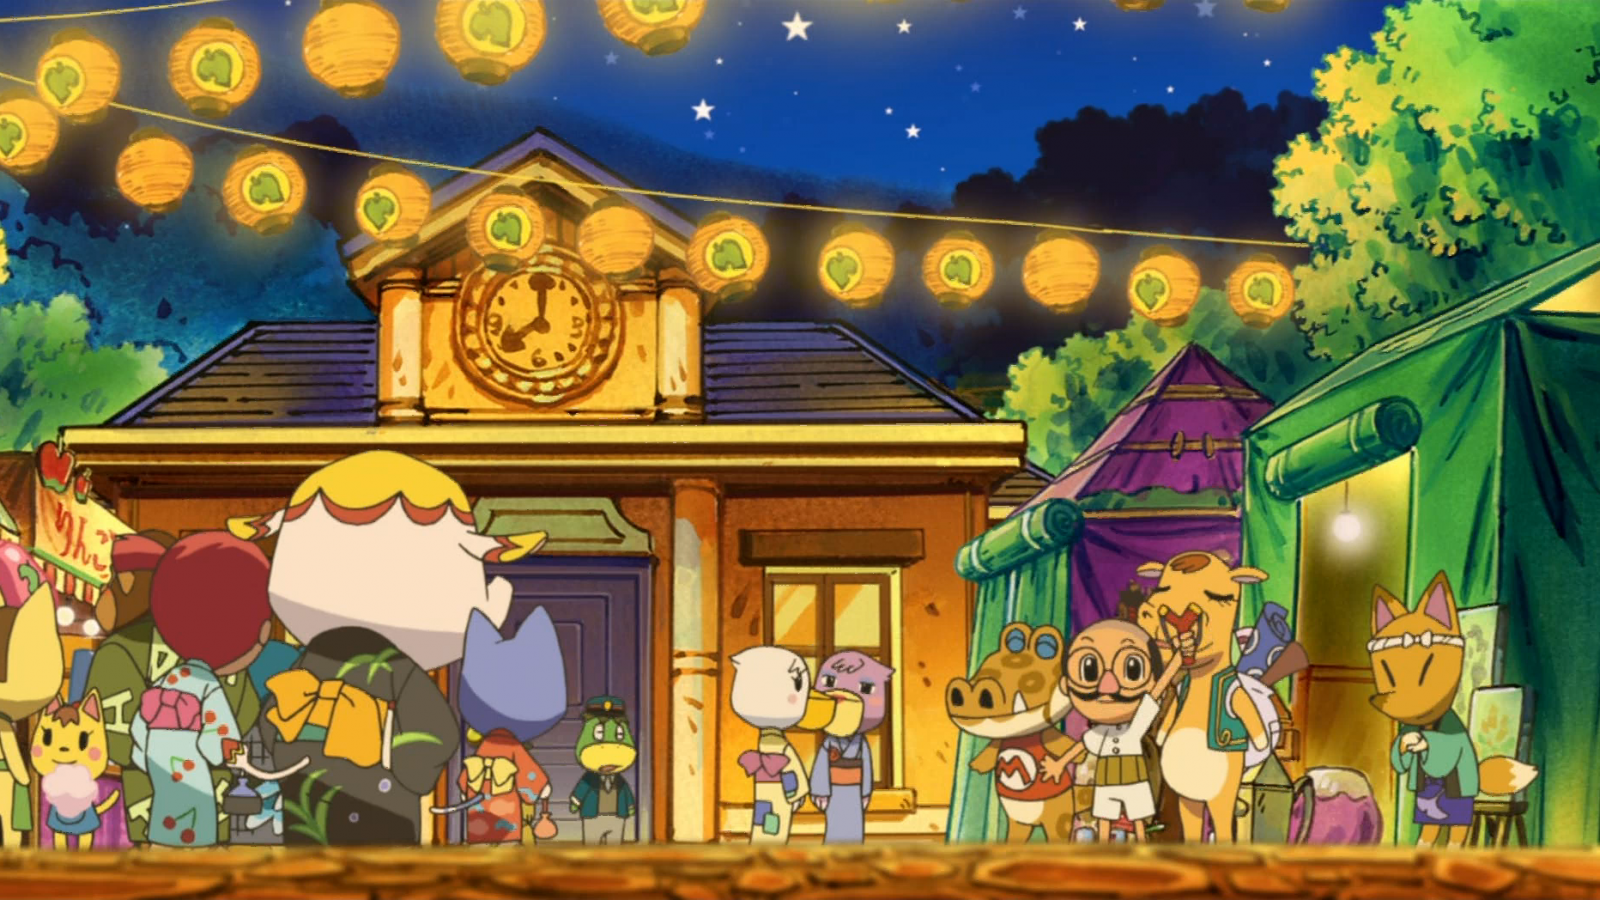 Free Download Animal Crossing 1080p Grohotun S Hd Anime Grohotun S Hd Anime 1920x1048 For Your Desktop Mobile Tablet Explore 49 Animal Crossing New Leaf Wallpapers Animal Crossing Desktop Wallpaper Animal